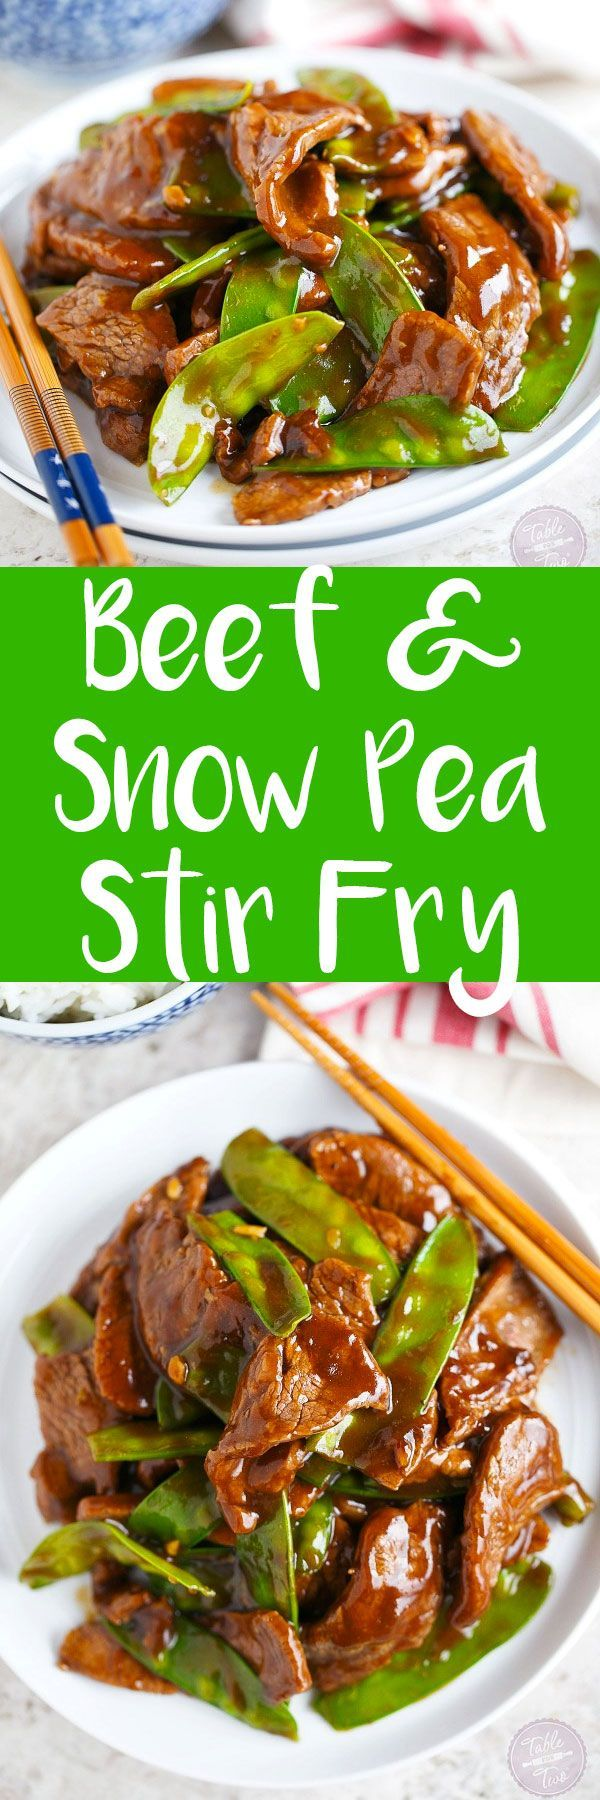 Short on time? This 25-minute beef and snow pea stir fry is the perfect weeknight dinner option! #chinesemeals